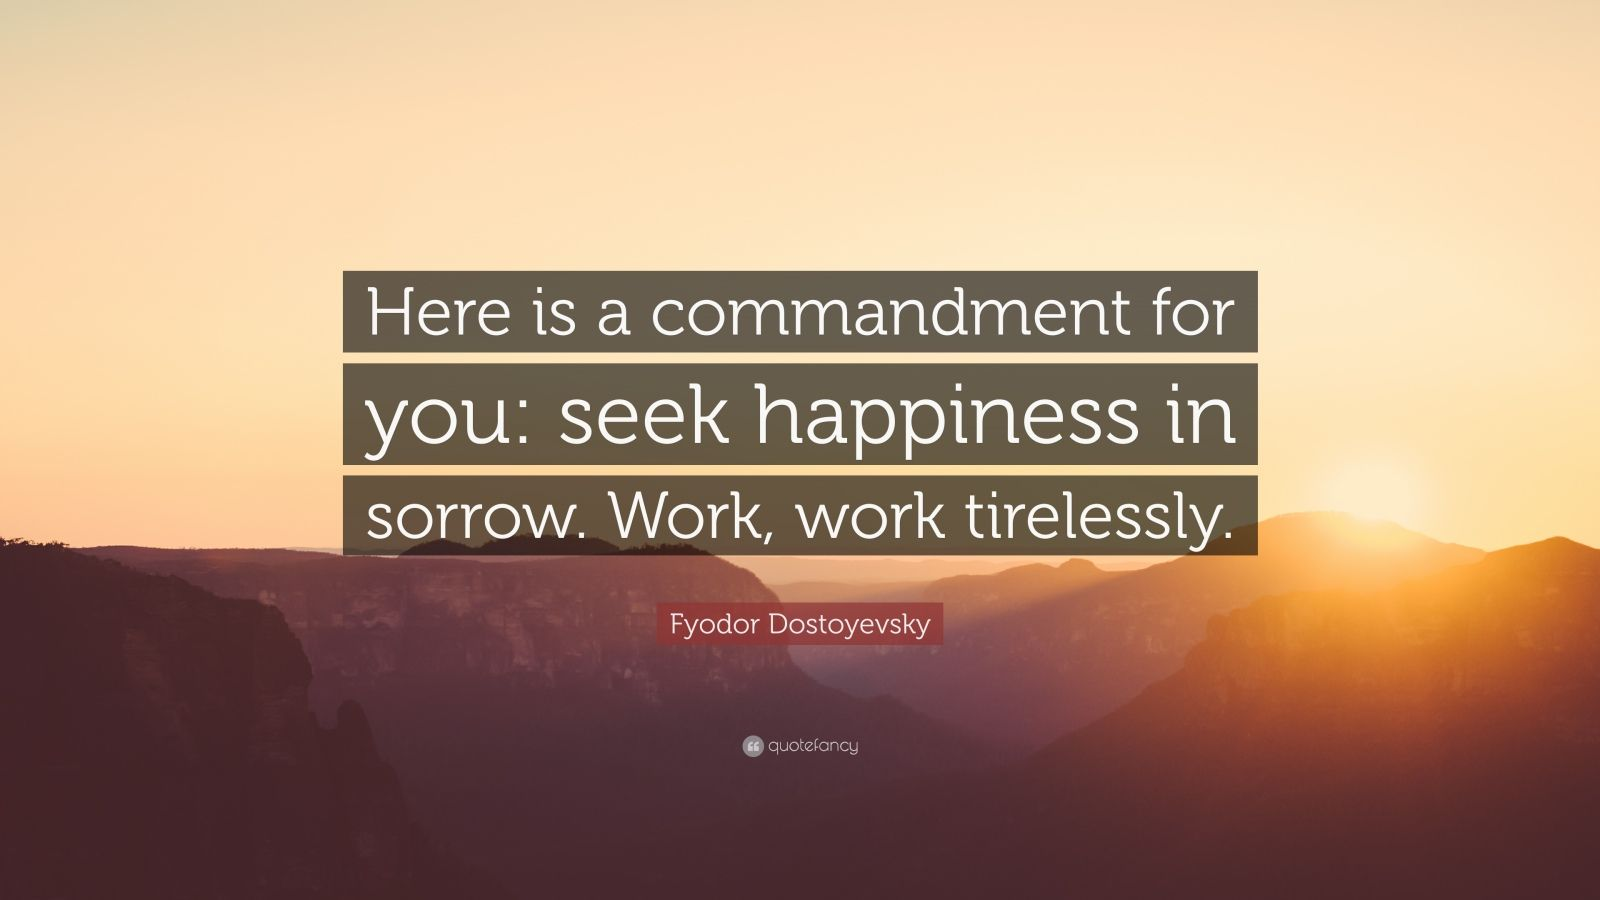 """Fyodor Dostoyevsky Quote: """"Here is a commandment for you: seek happiness in sorrow. Work, work tirelessly."""""""